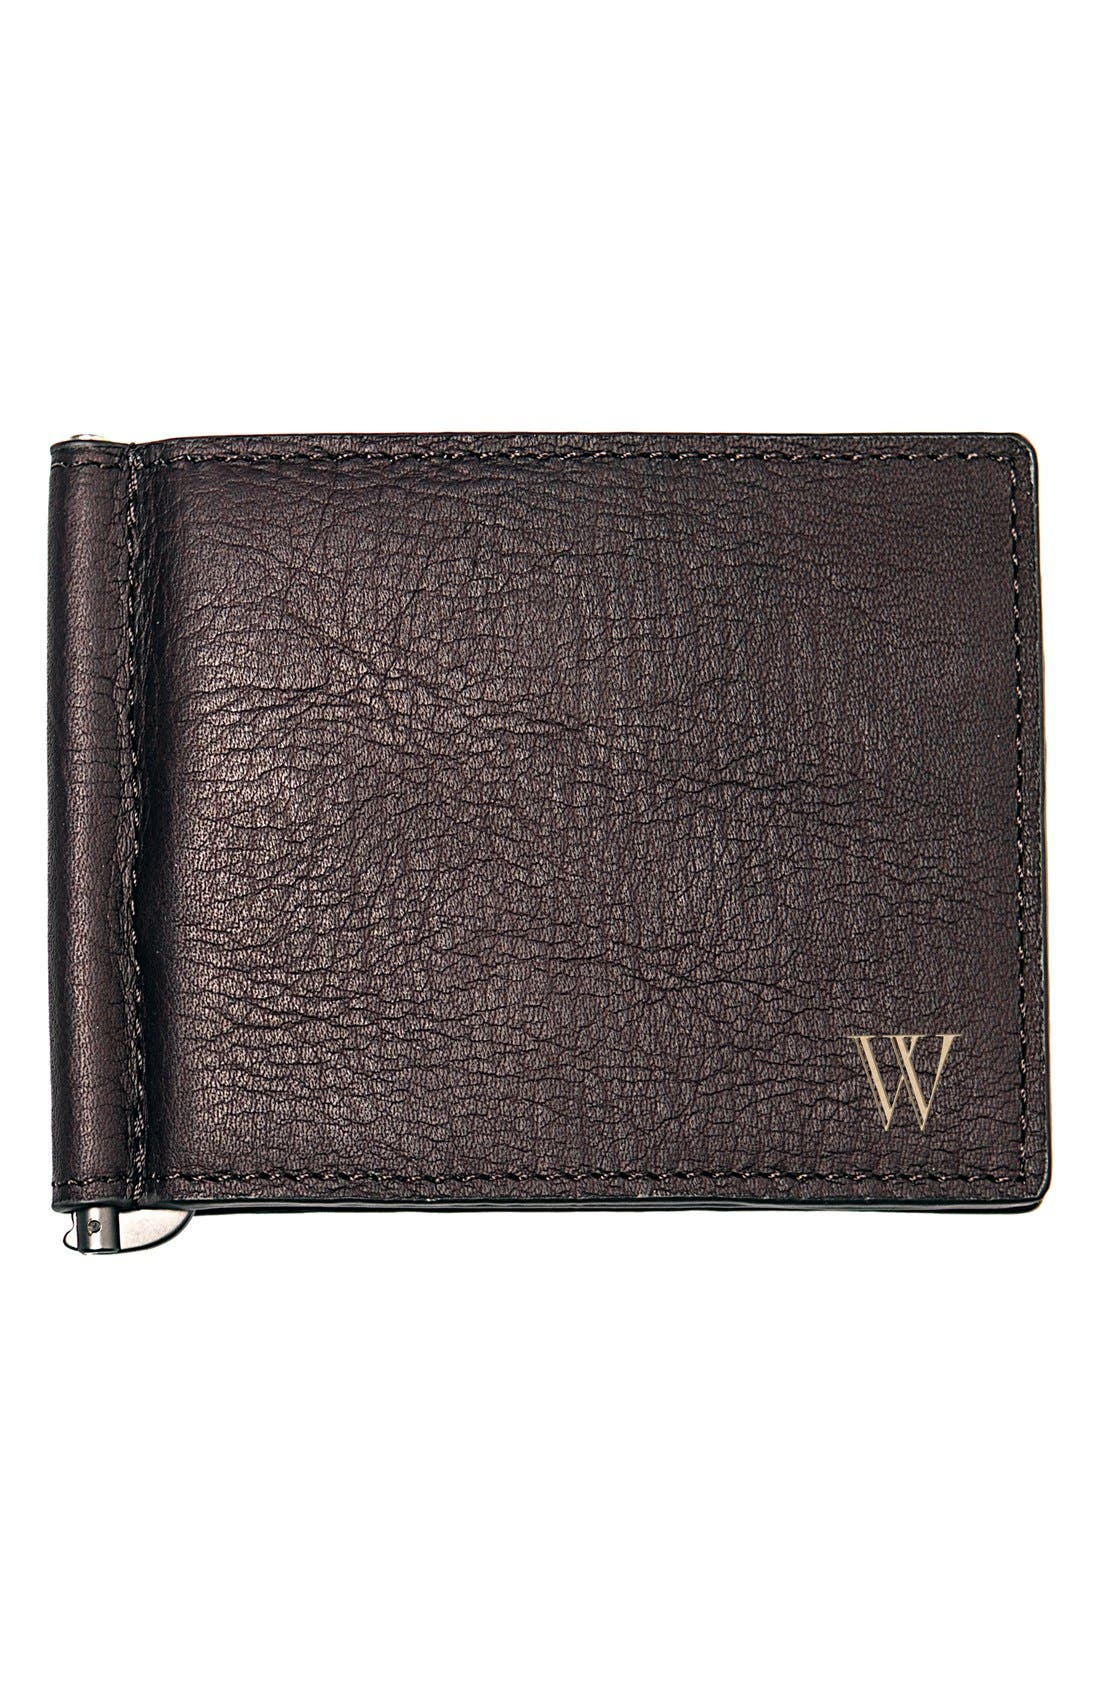 Main Image - Cathy's Concepts Monogram Leather Wallet & Money Clip